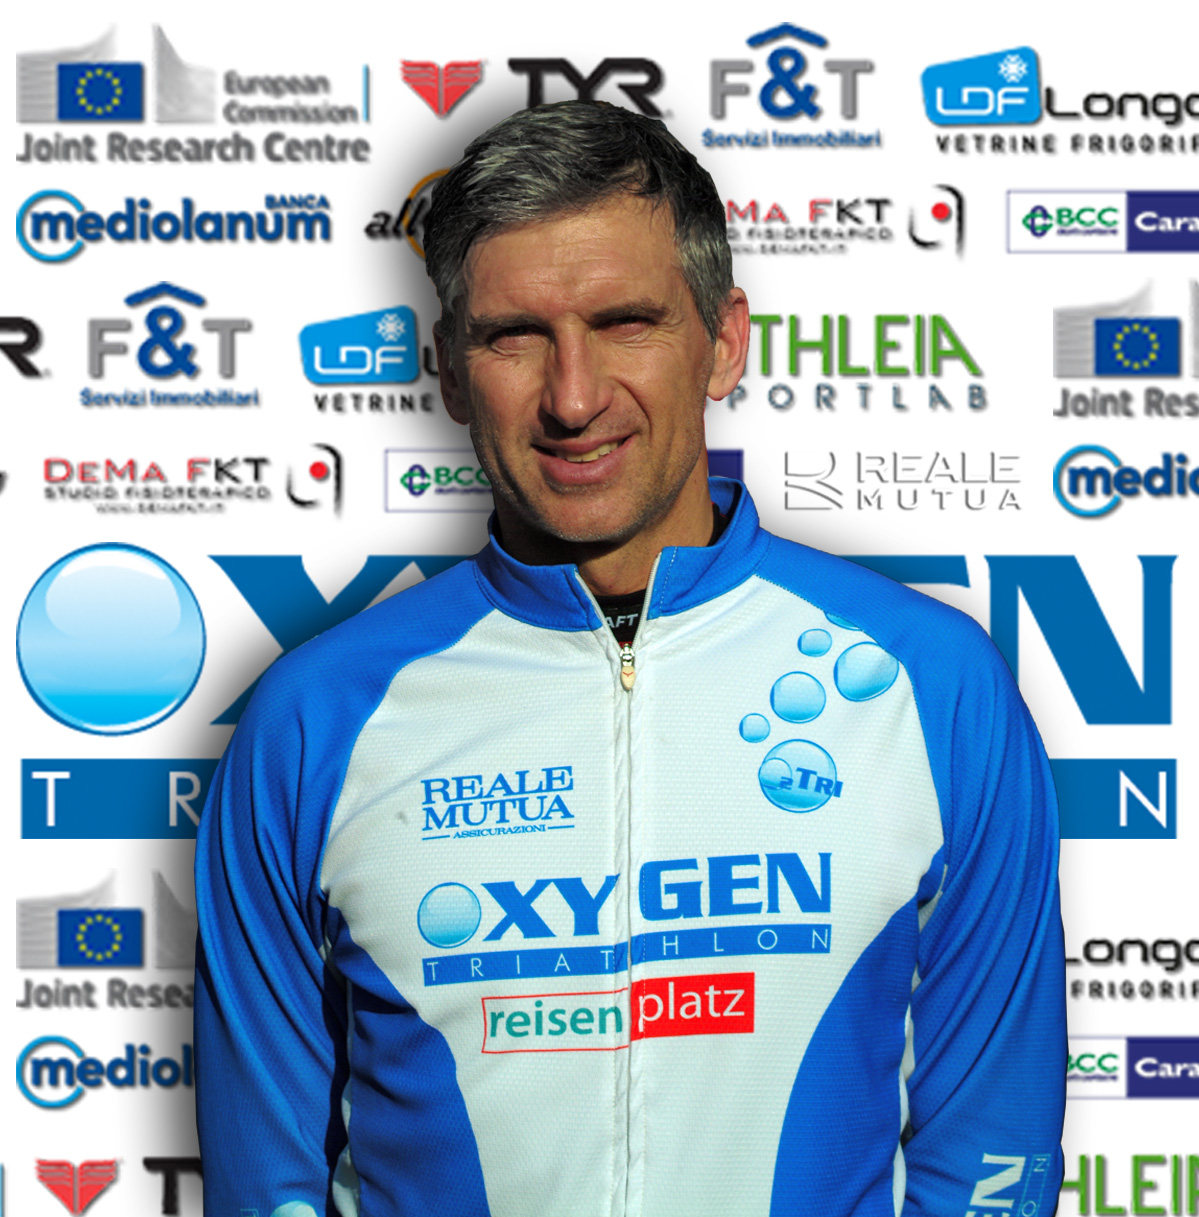 https://www.oxygentriathlon.it/wp-content/uploads/2019/10/pres-fabrizio.jpg